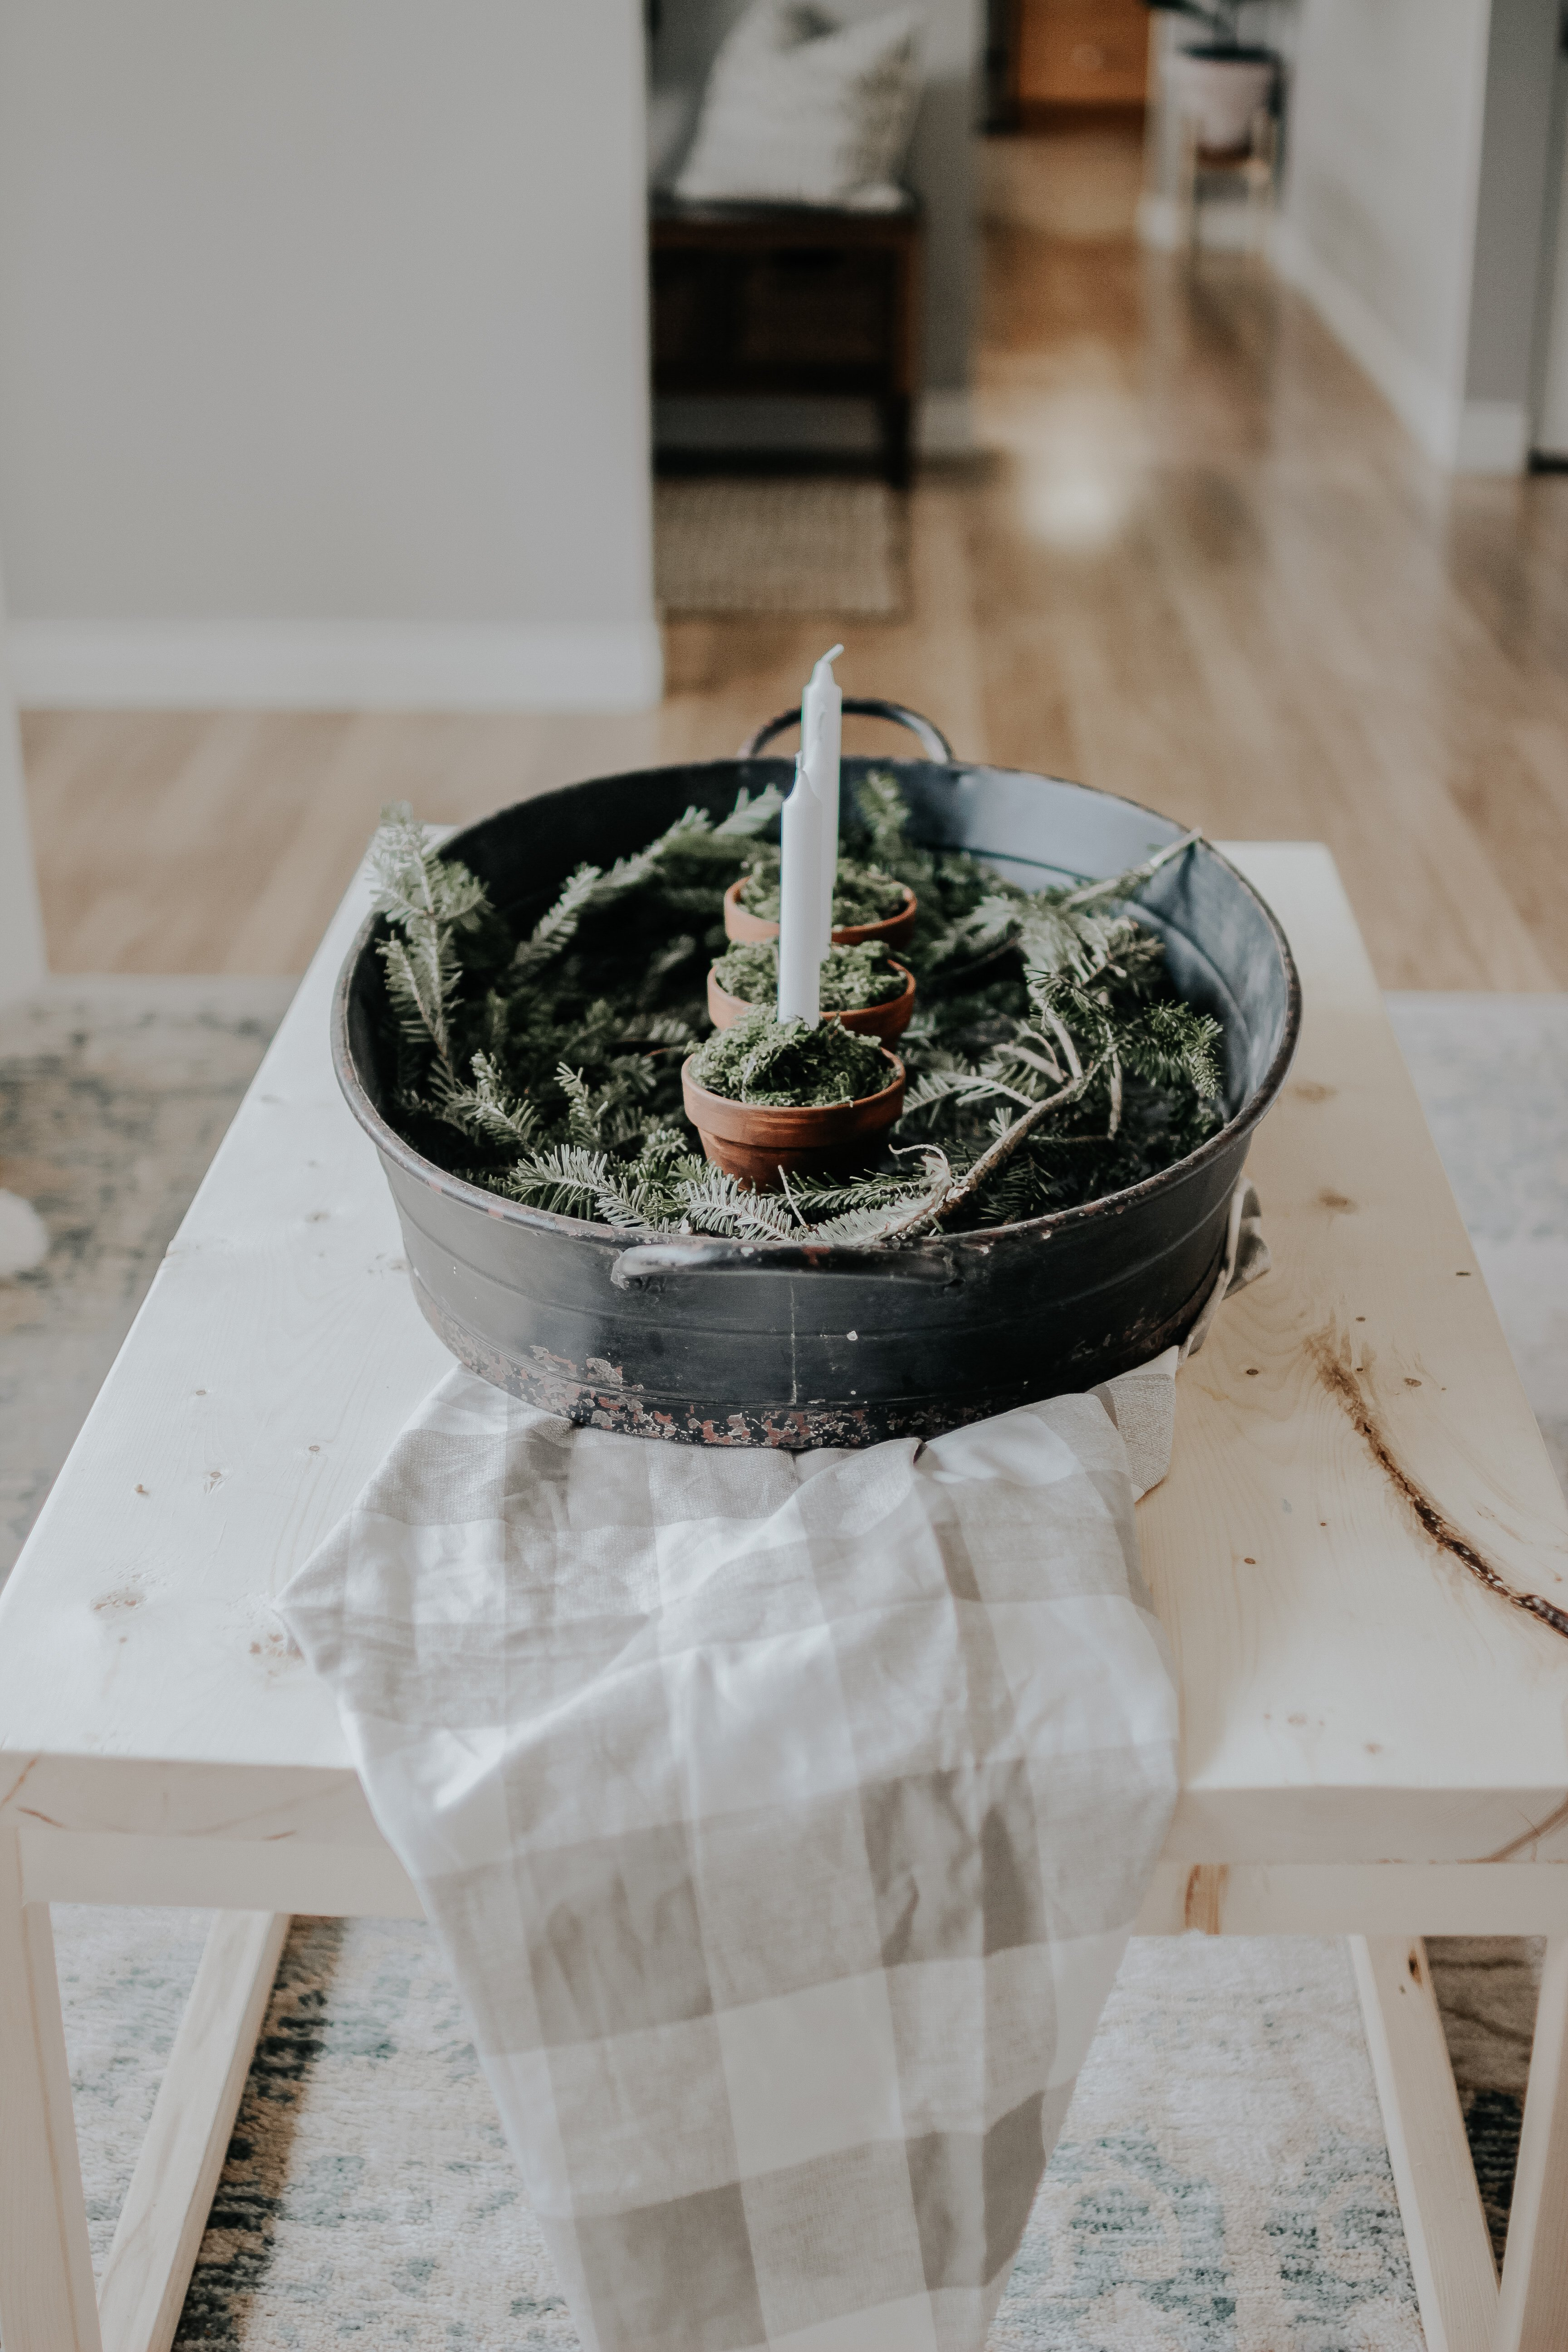 Simple Moss Centerpiece, Under 25 Dollars. Easy Quick and Cheap Fall or Winter Candle Centerpiece With Moss and Boughs